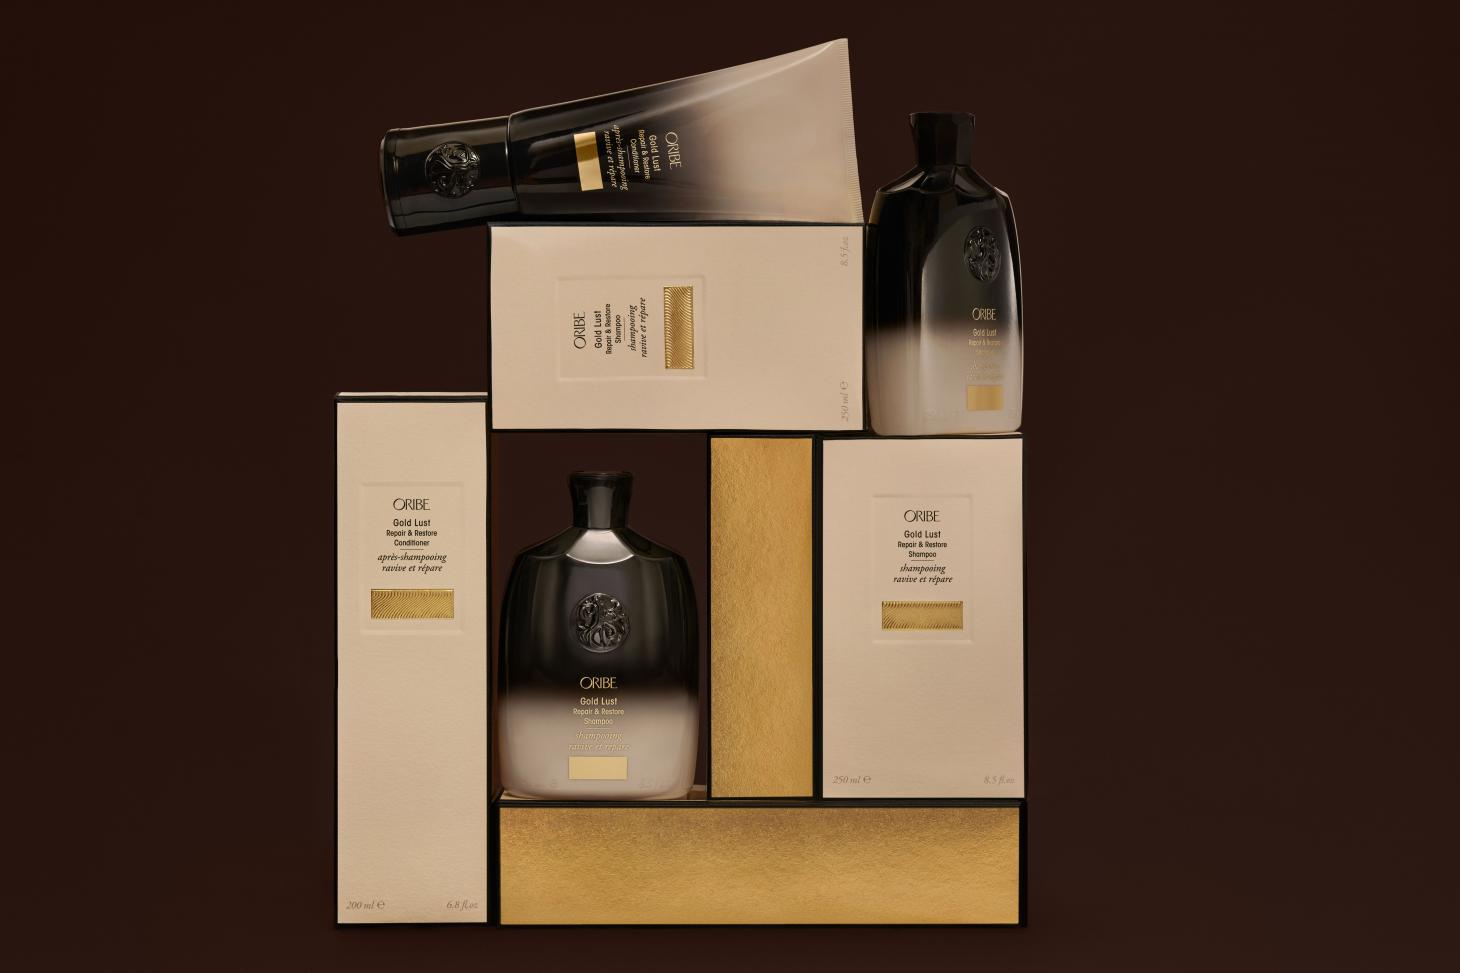 Orbie Gold Lust hair care shampoo and conditioner